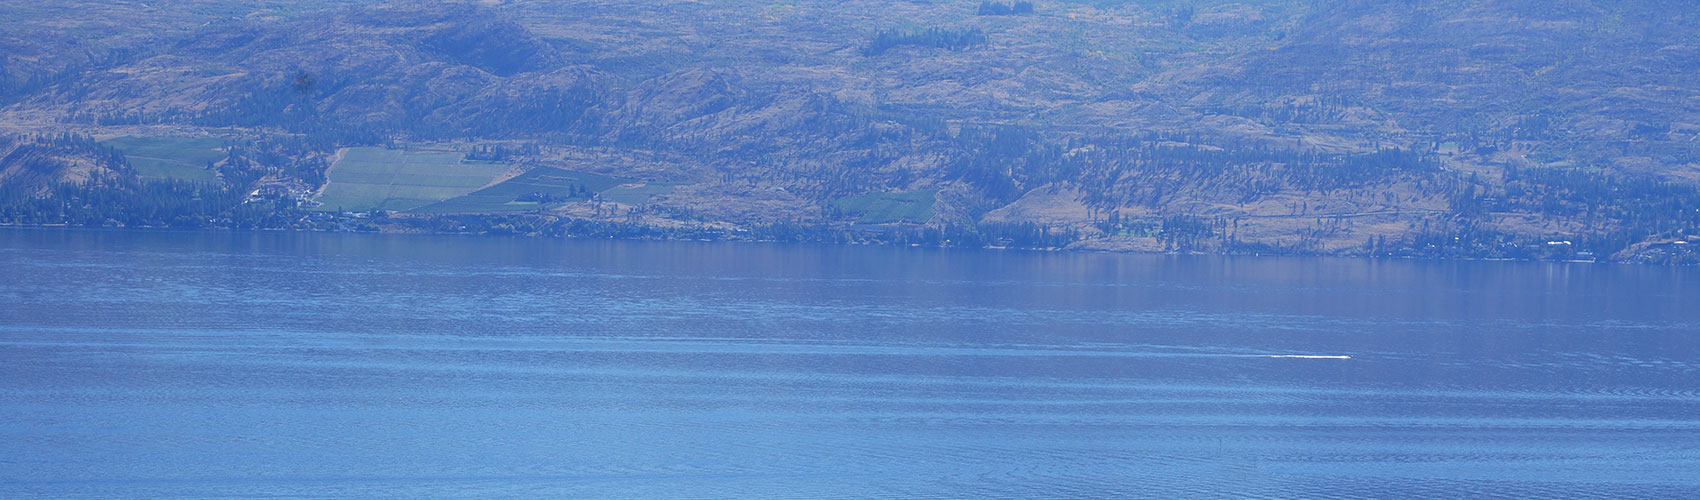 September 9, 2018, sighting by Andrew Stark of Kelowna that appears to offer pretty conculsive evidence that the great Lake Monster of Lake Okanagan does exist!